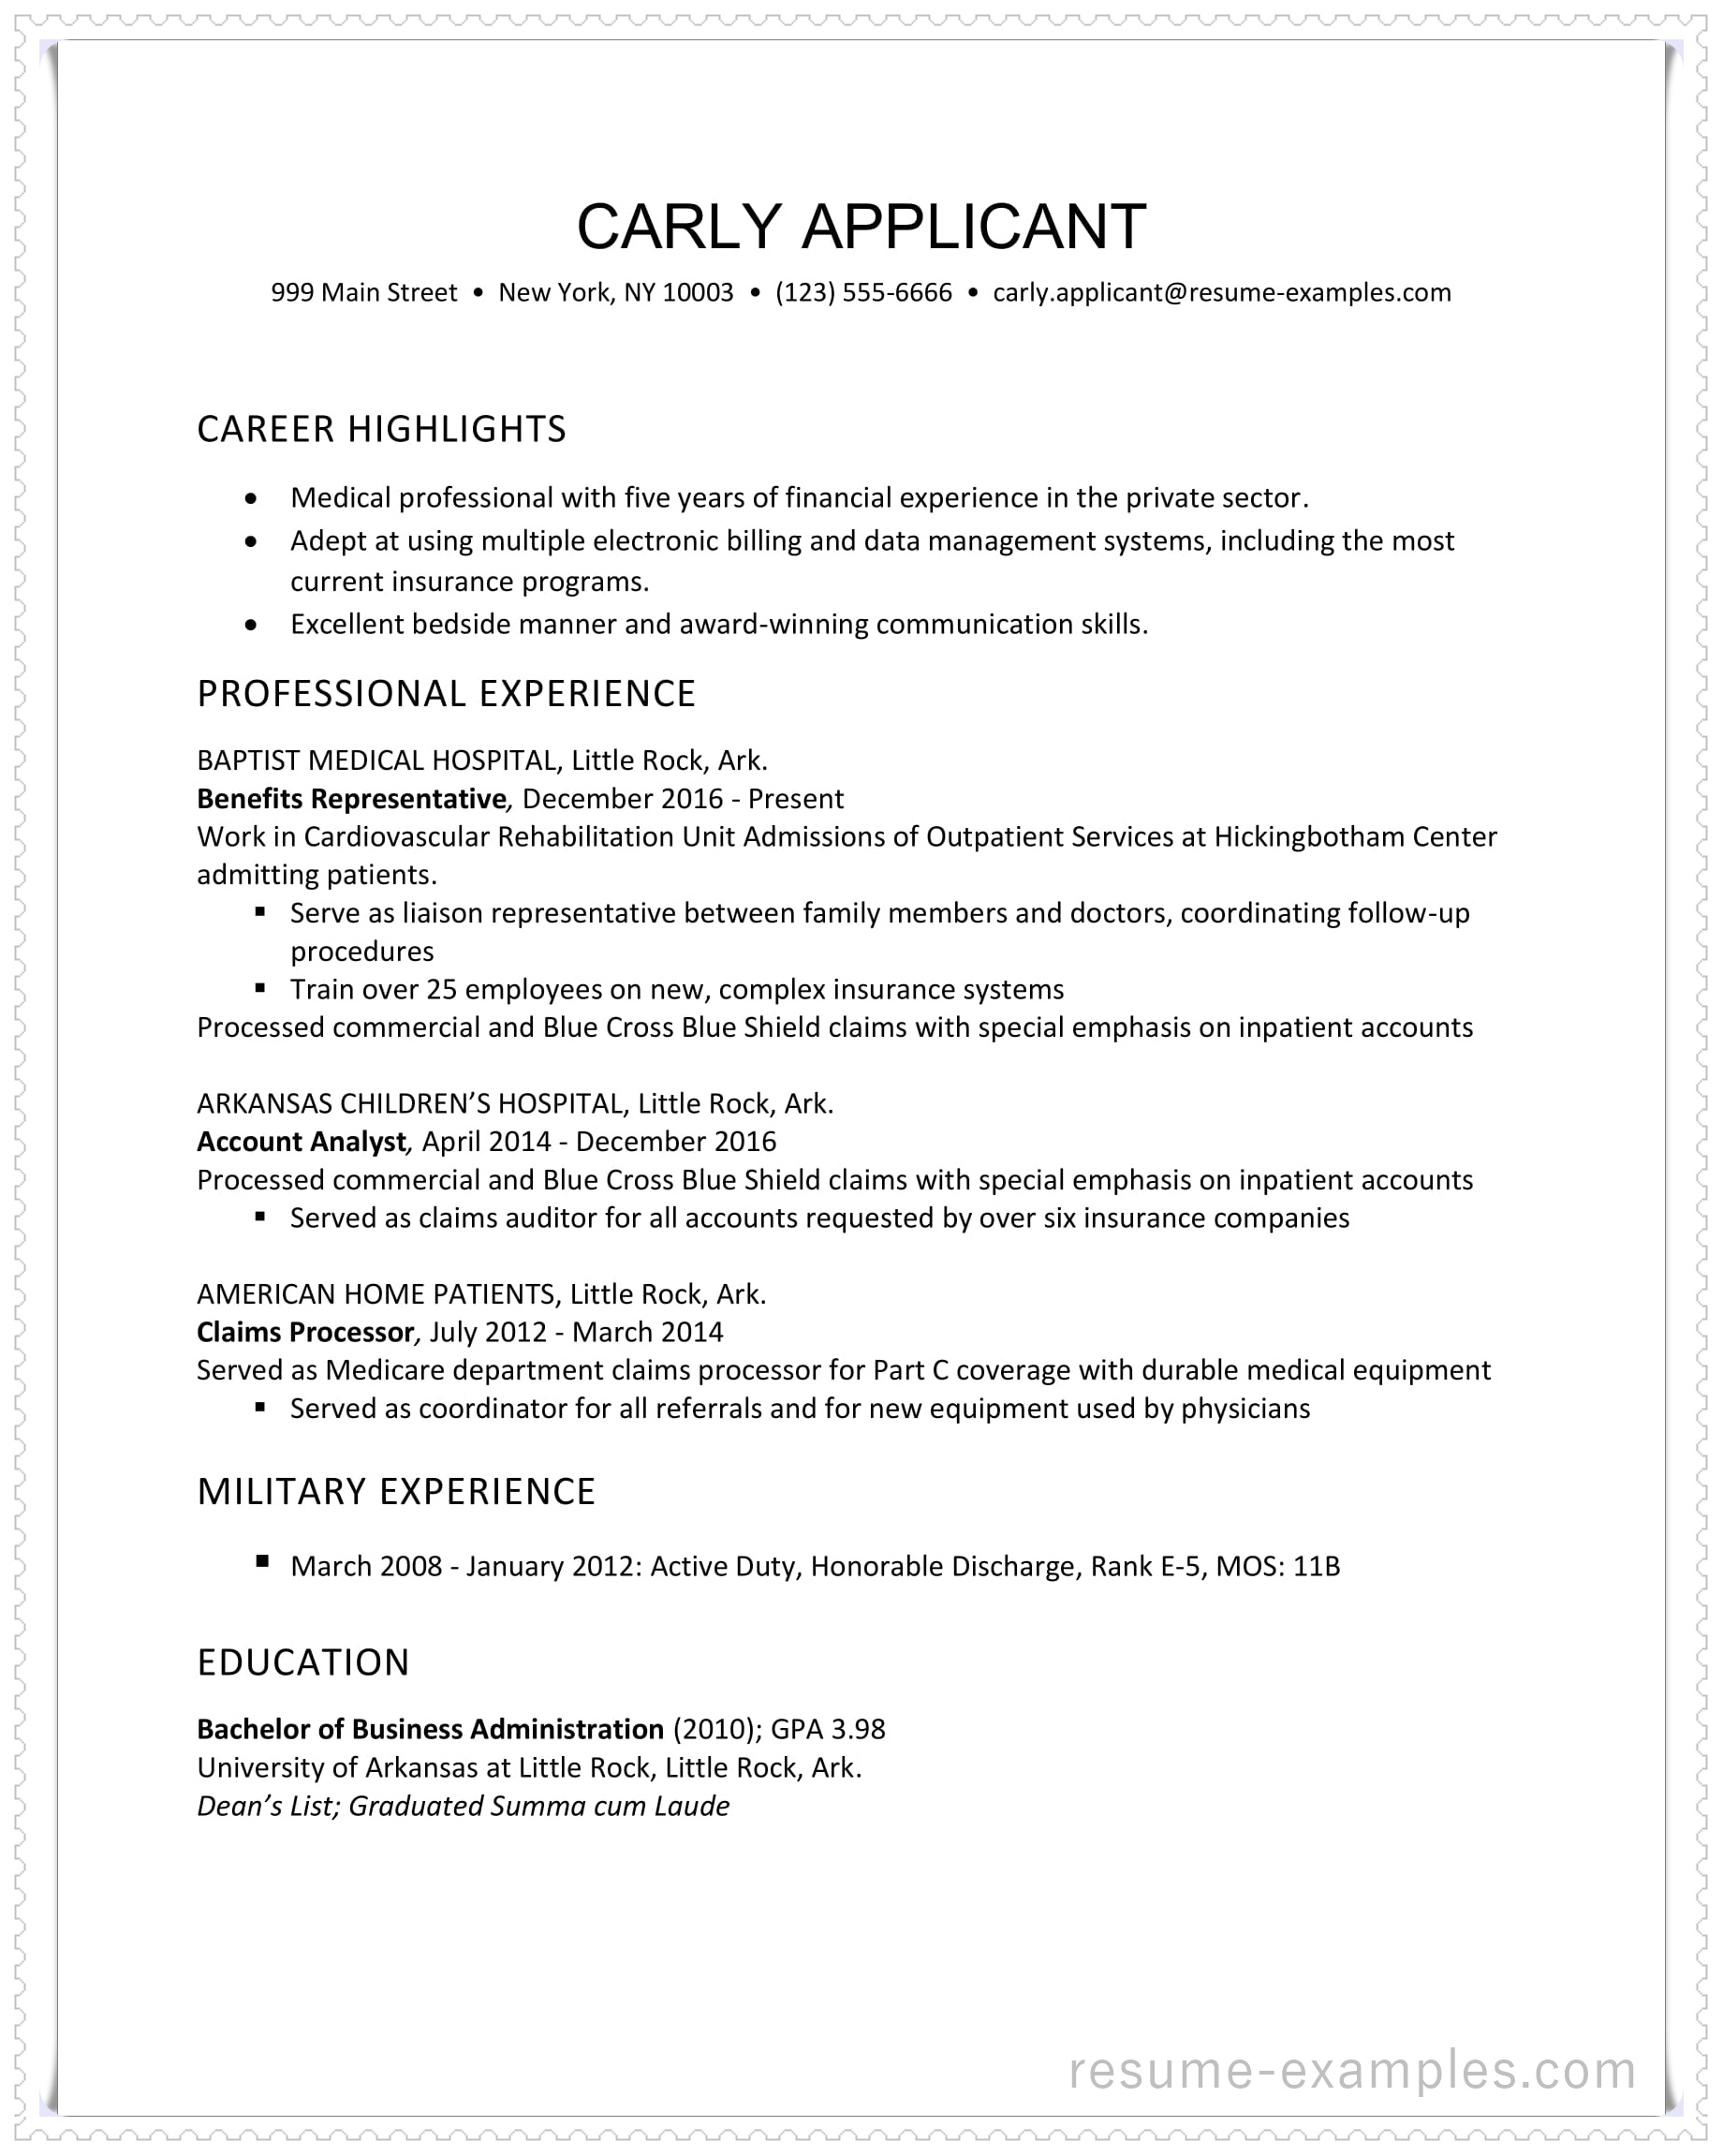 health insurance industry resume example in ms word format forestry on the job training Resume Forestry Resume Example